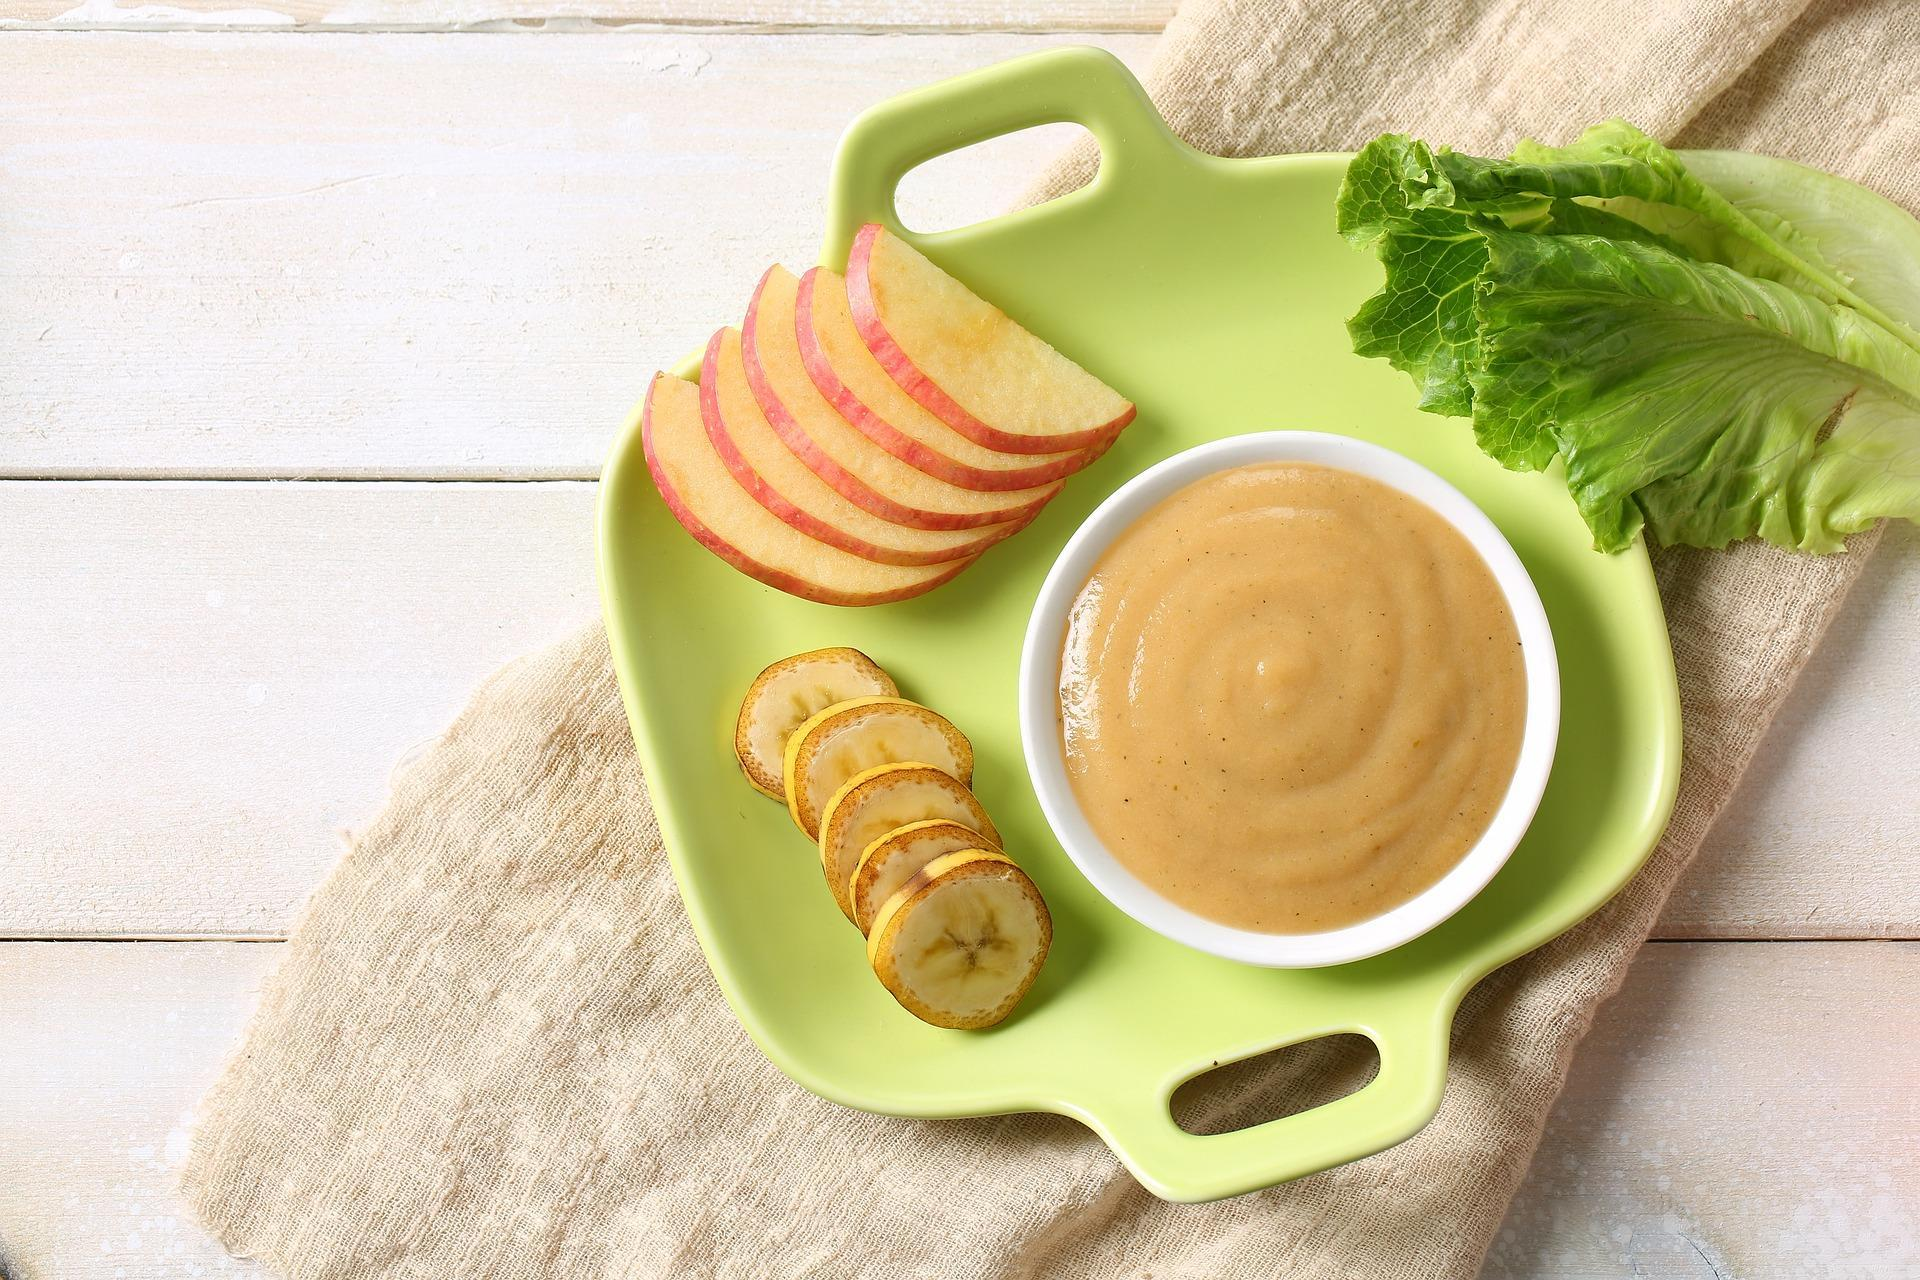 Tools for Home Made Baby Food